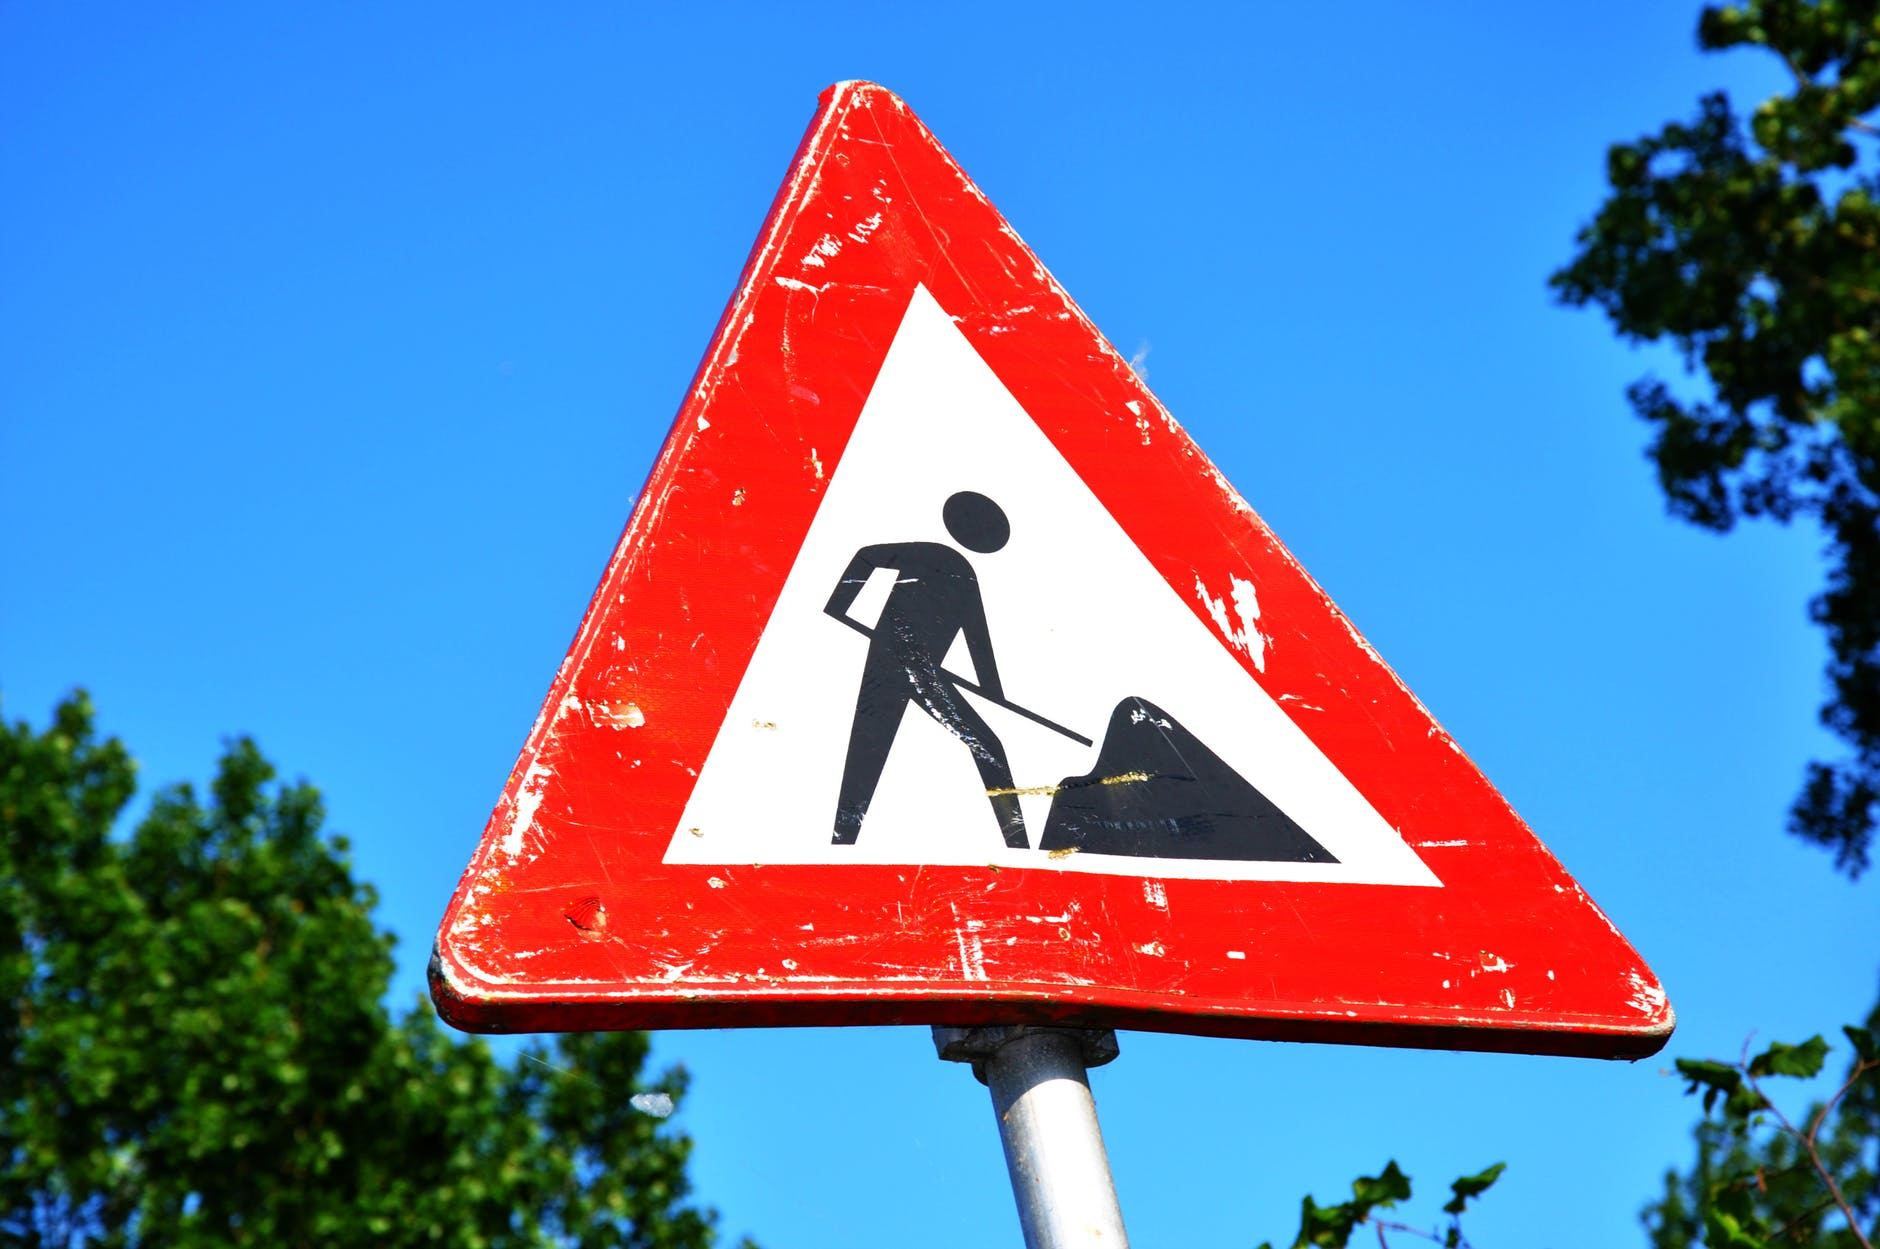 A white triangle-shaped road work sign depicting a human shoveling dirt is outlined in red